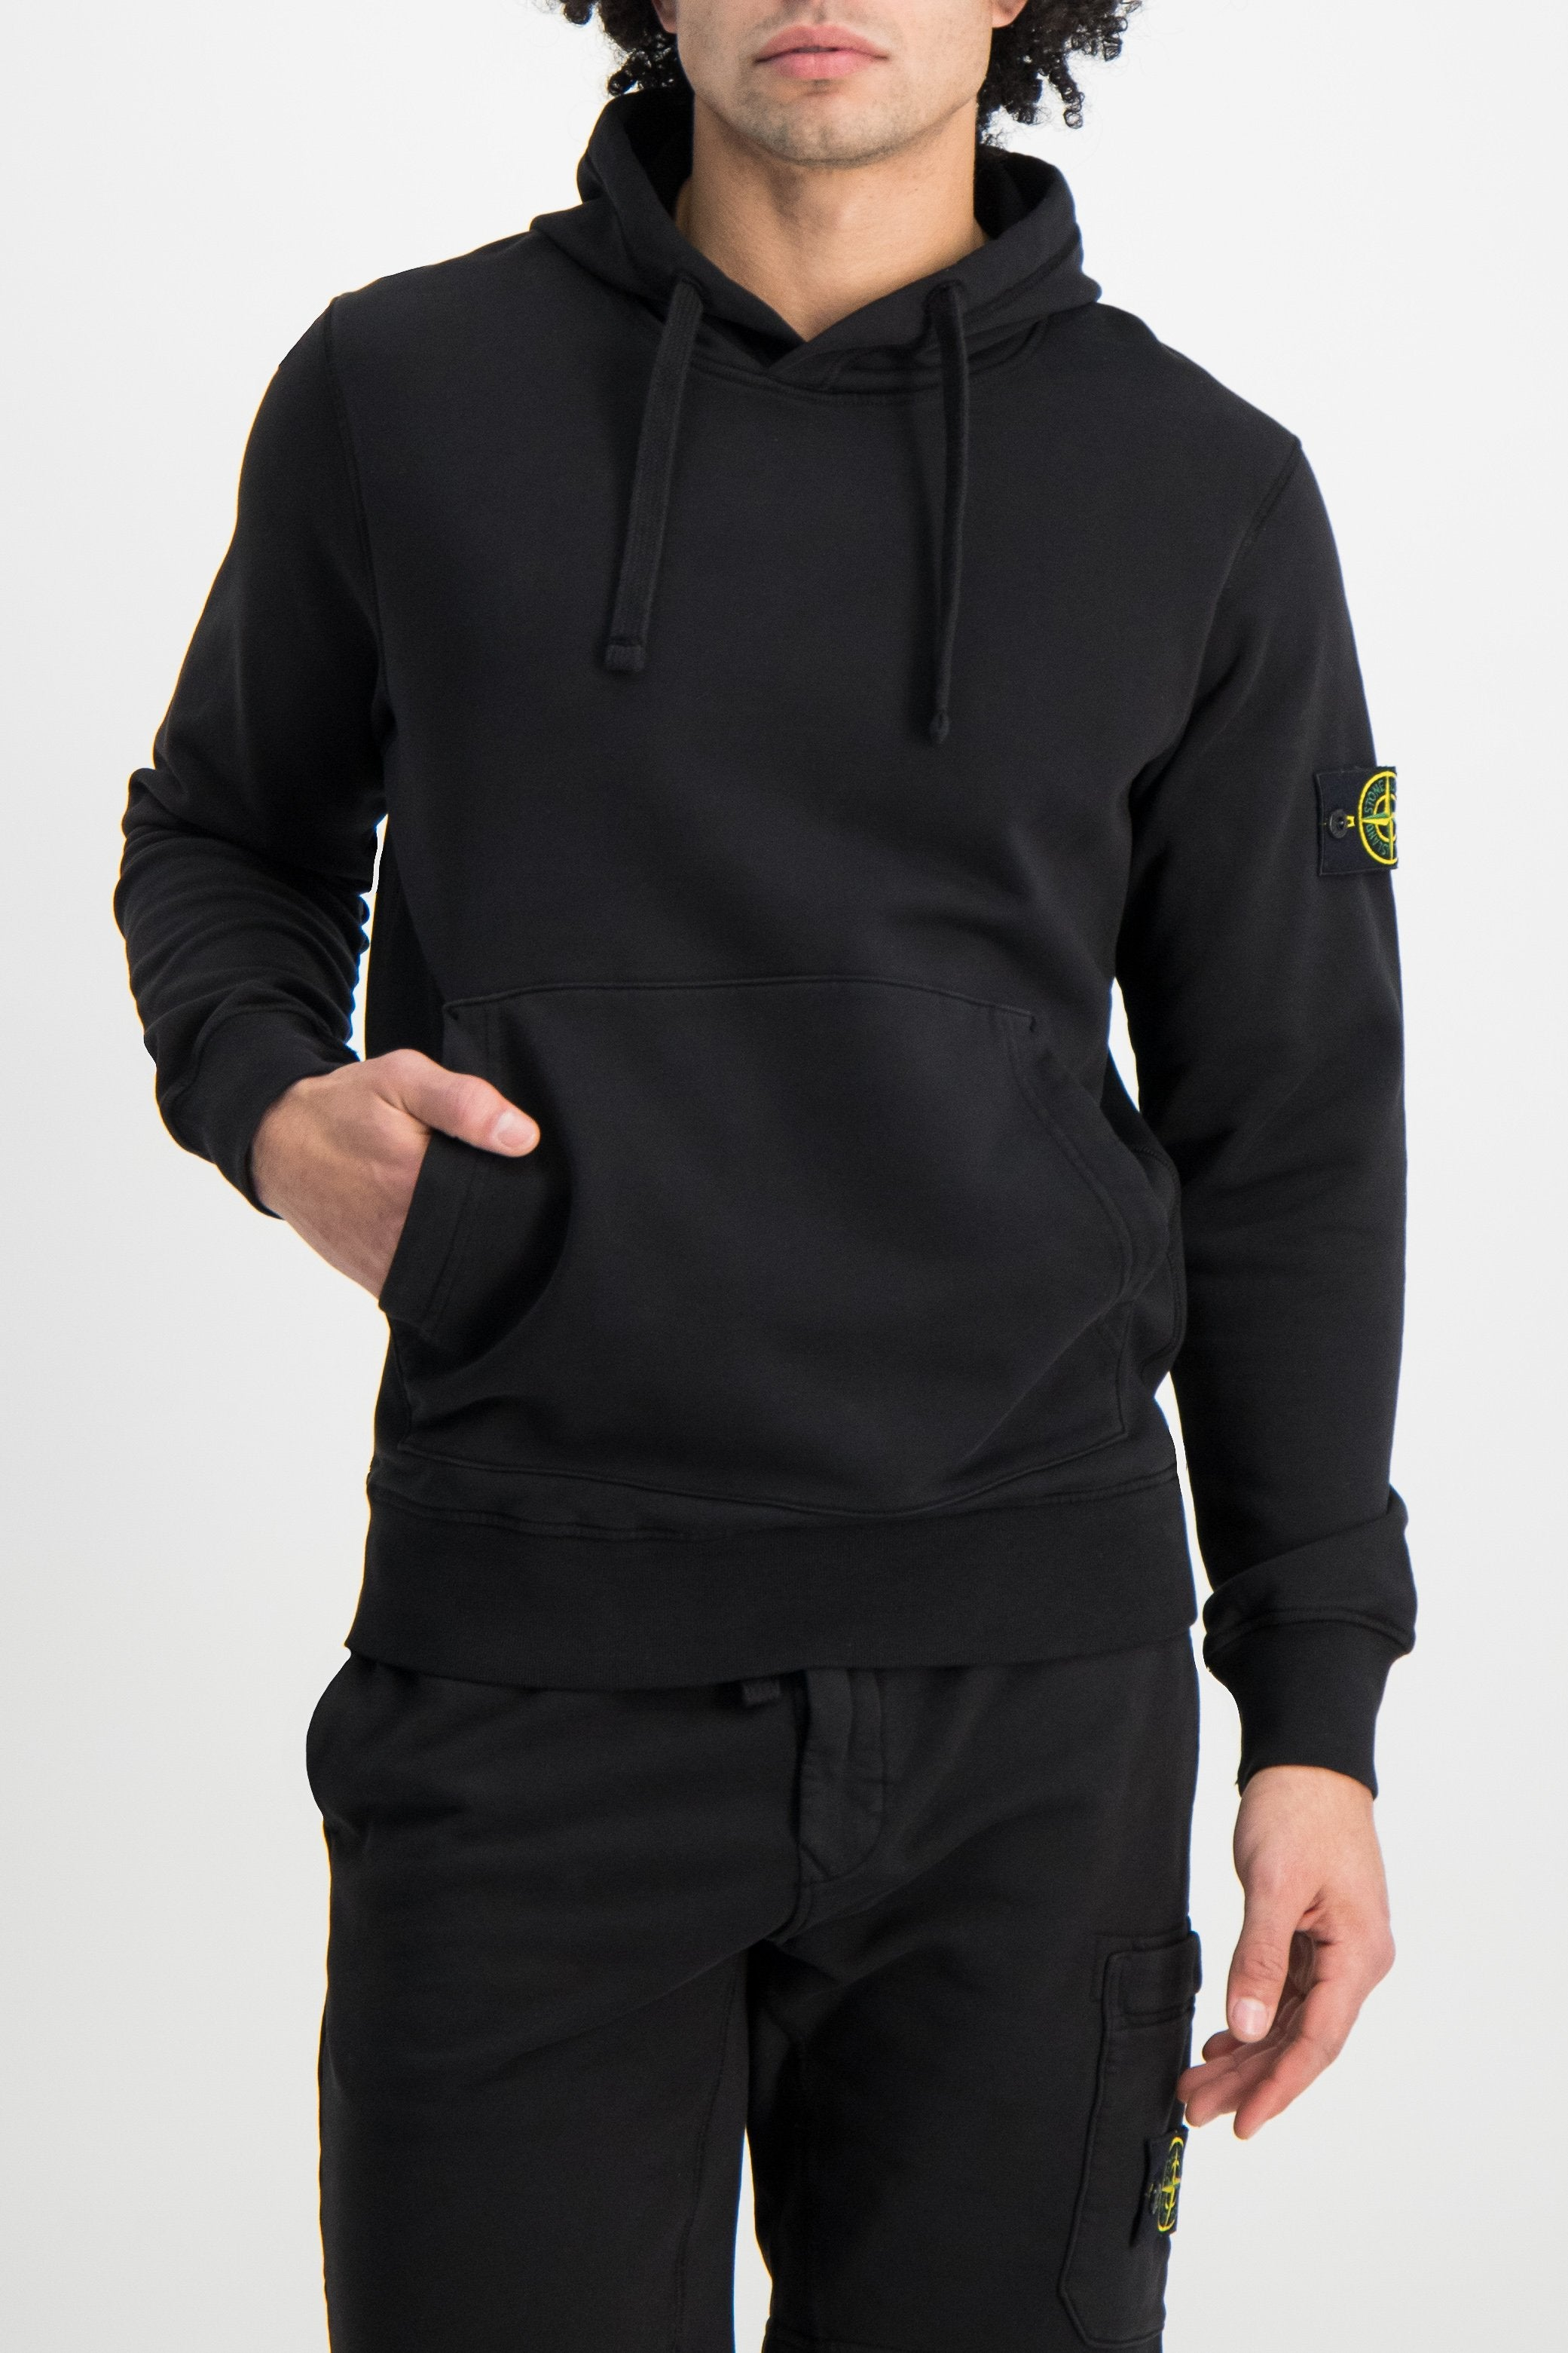 Front Crop Image Of Model Wearing Stone Island Hooded Sweatshirt Black